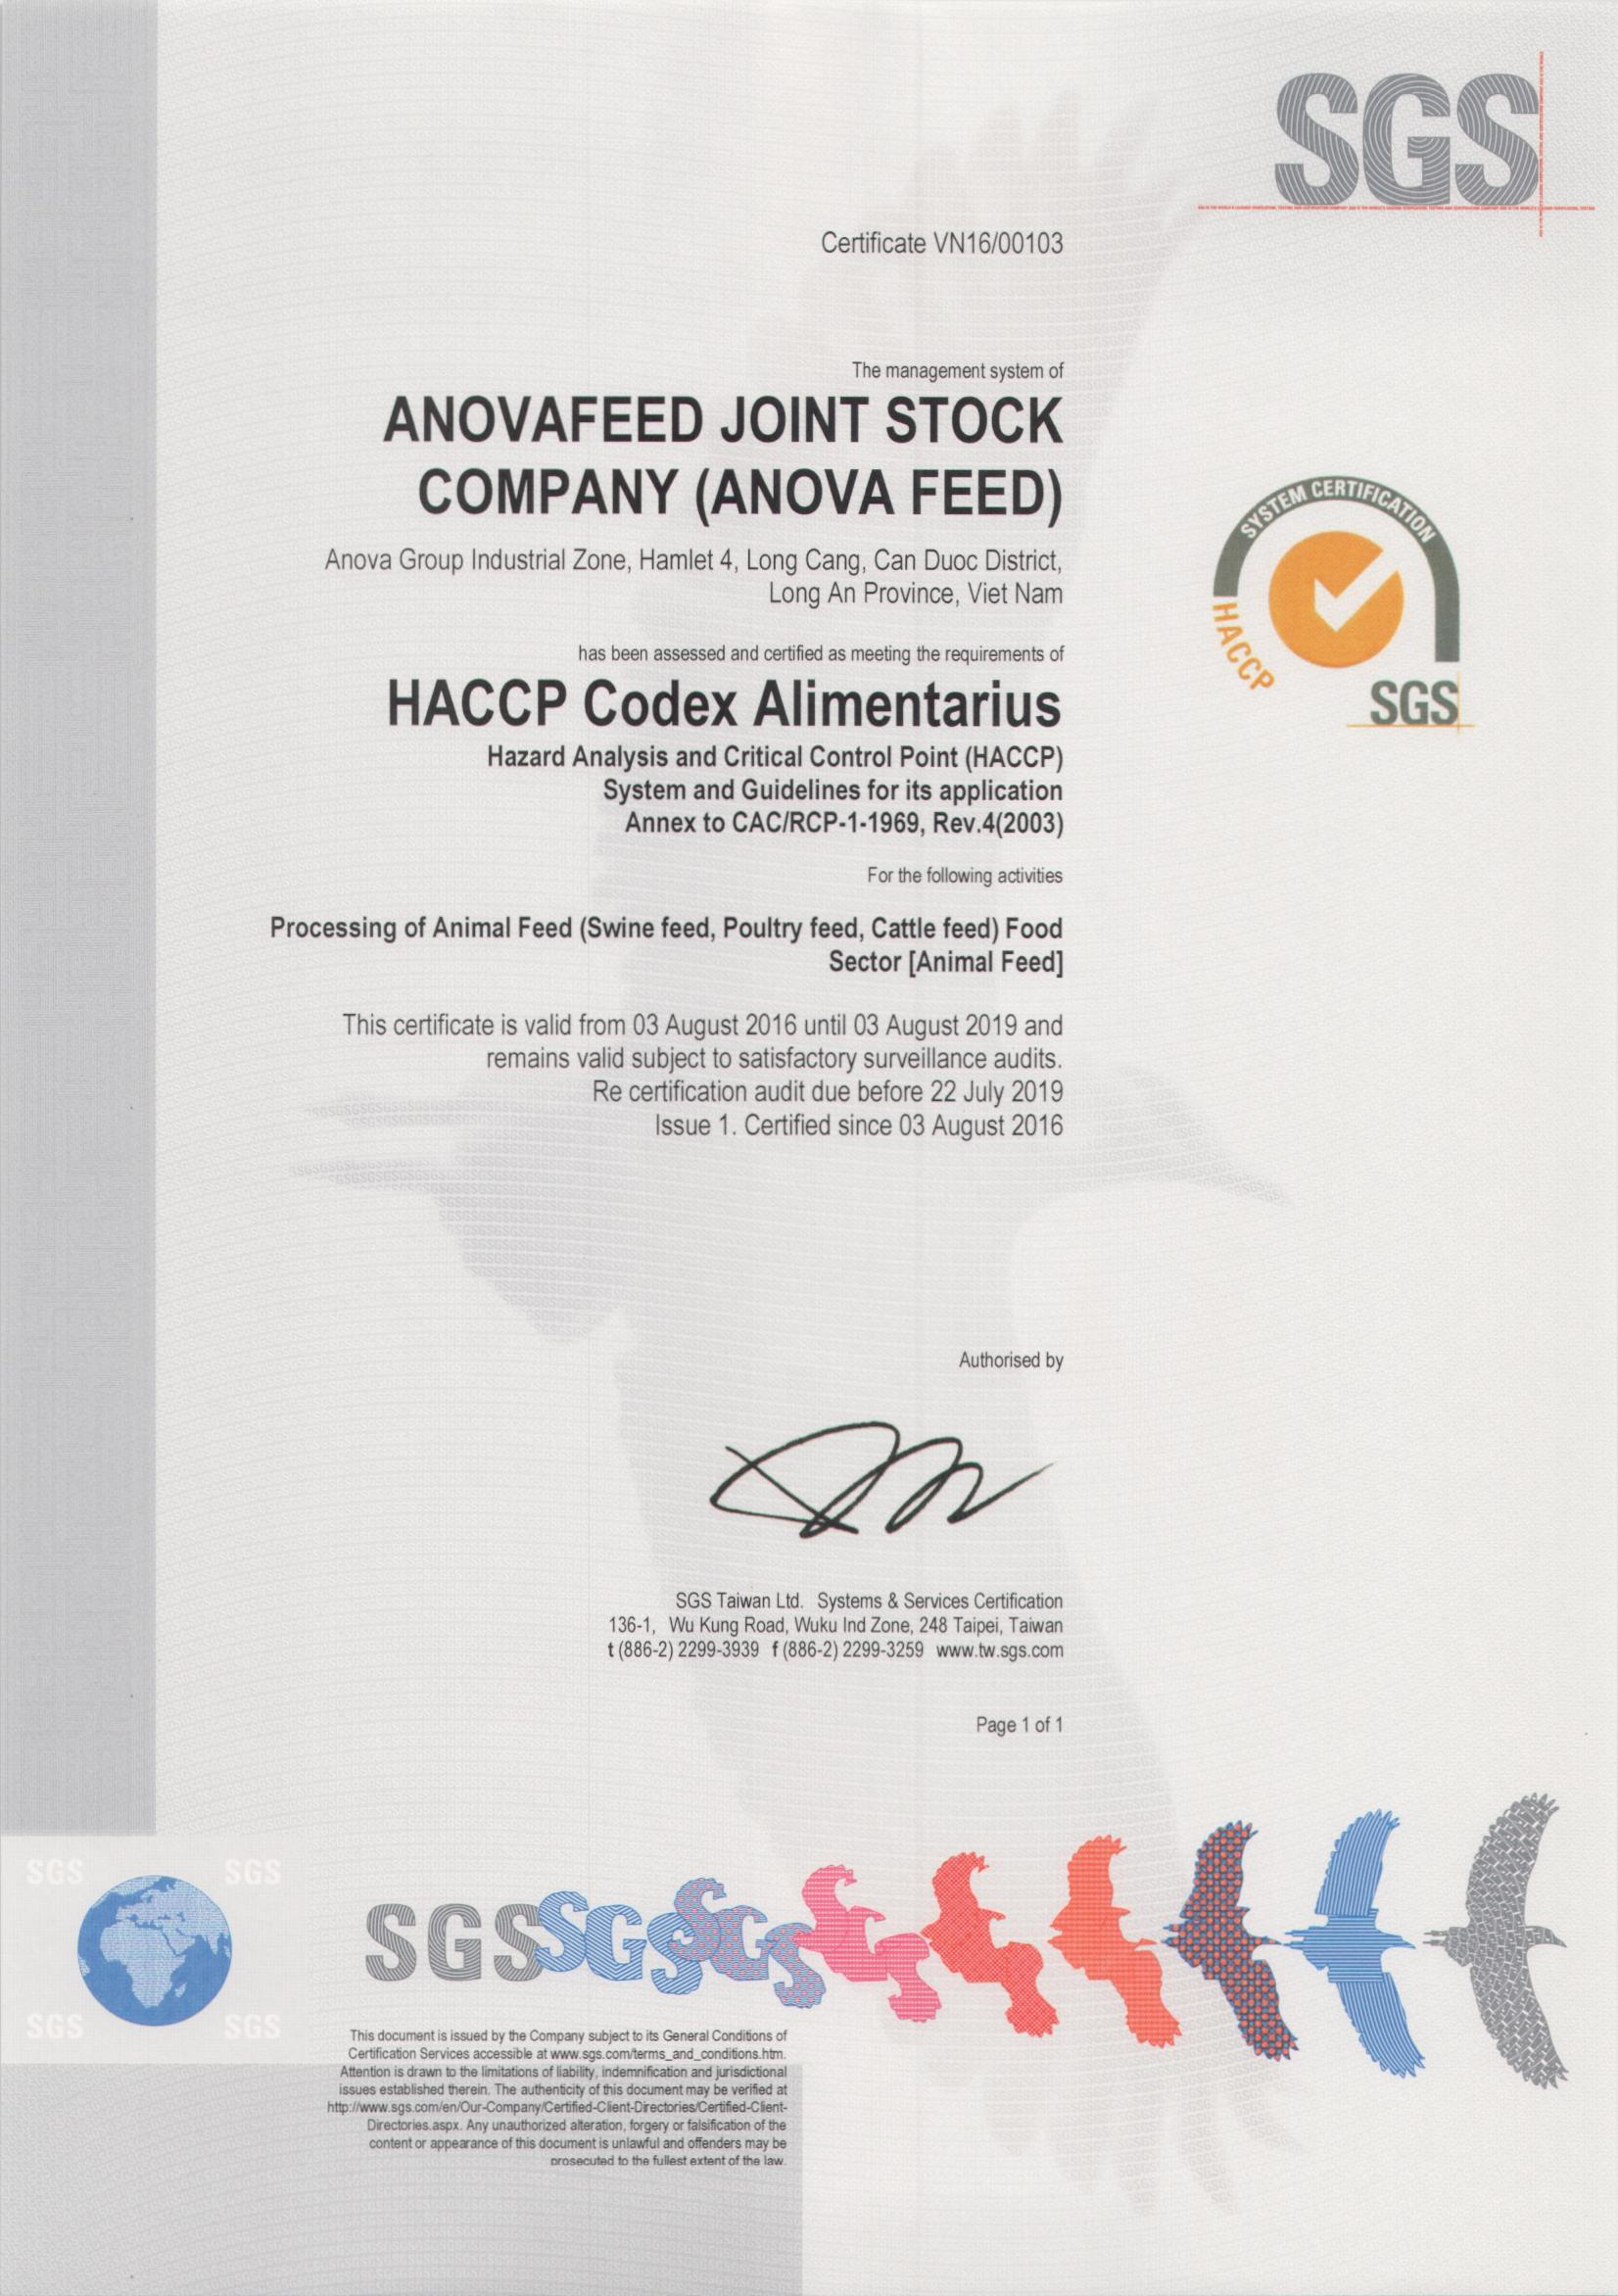 HACCP certificate for safe food management systems